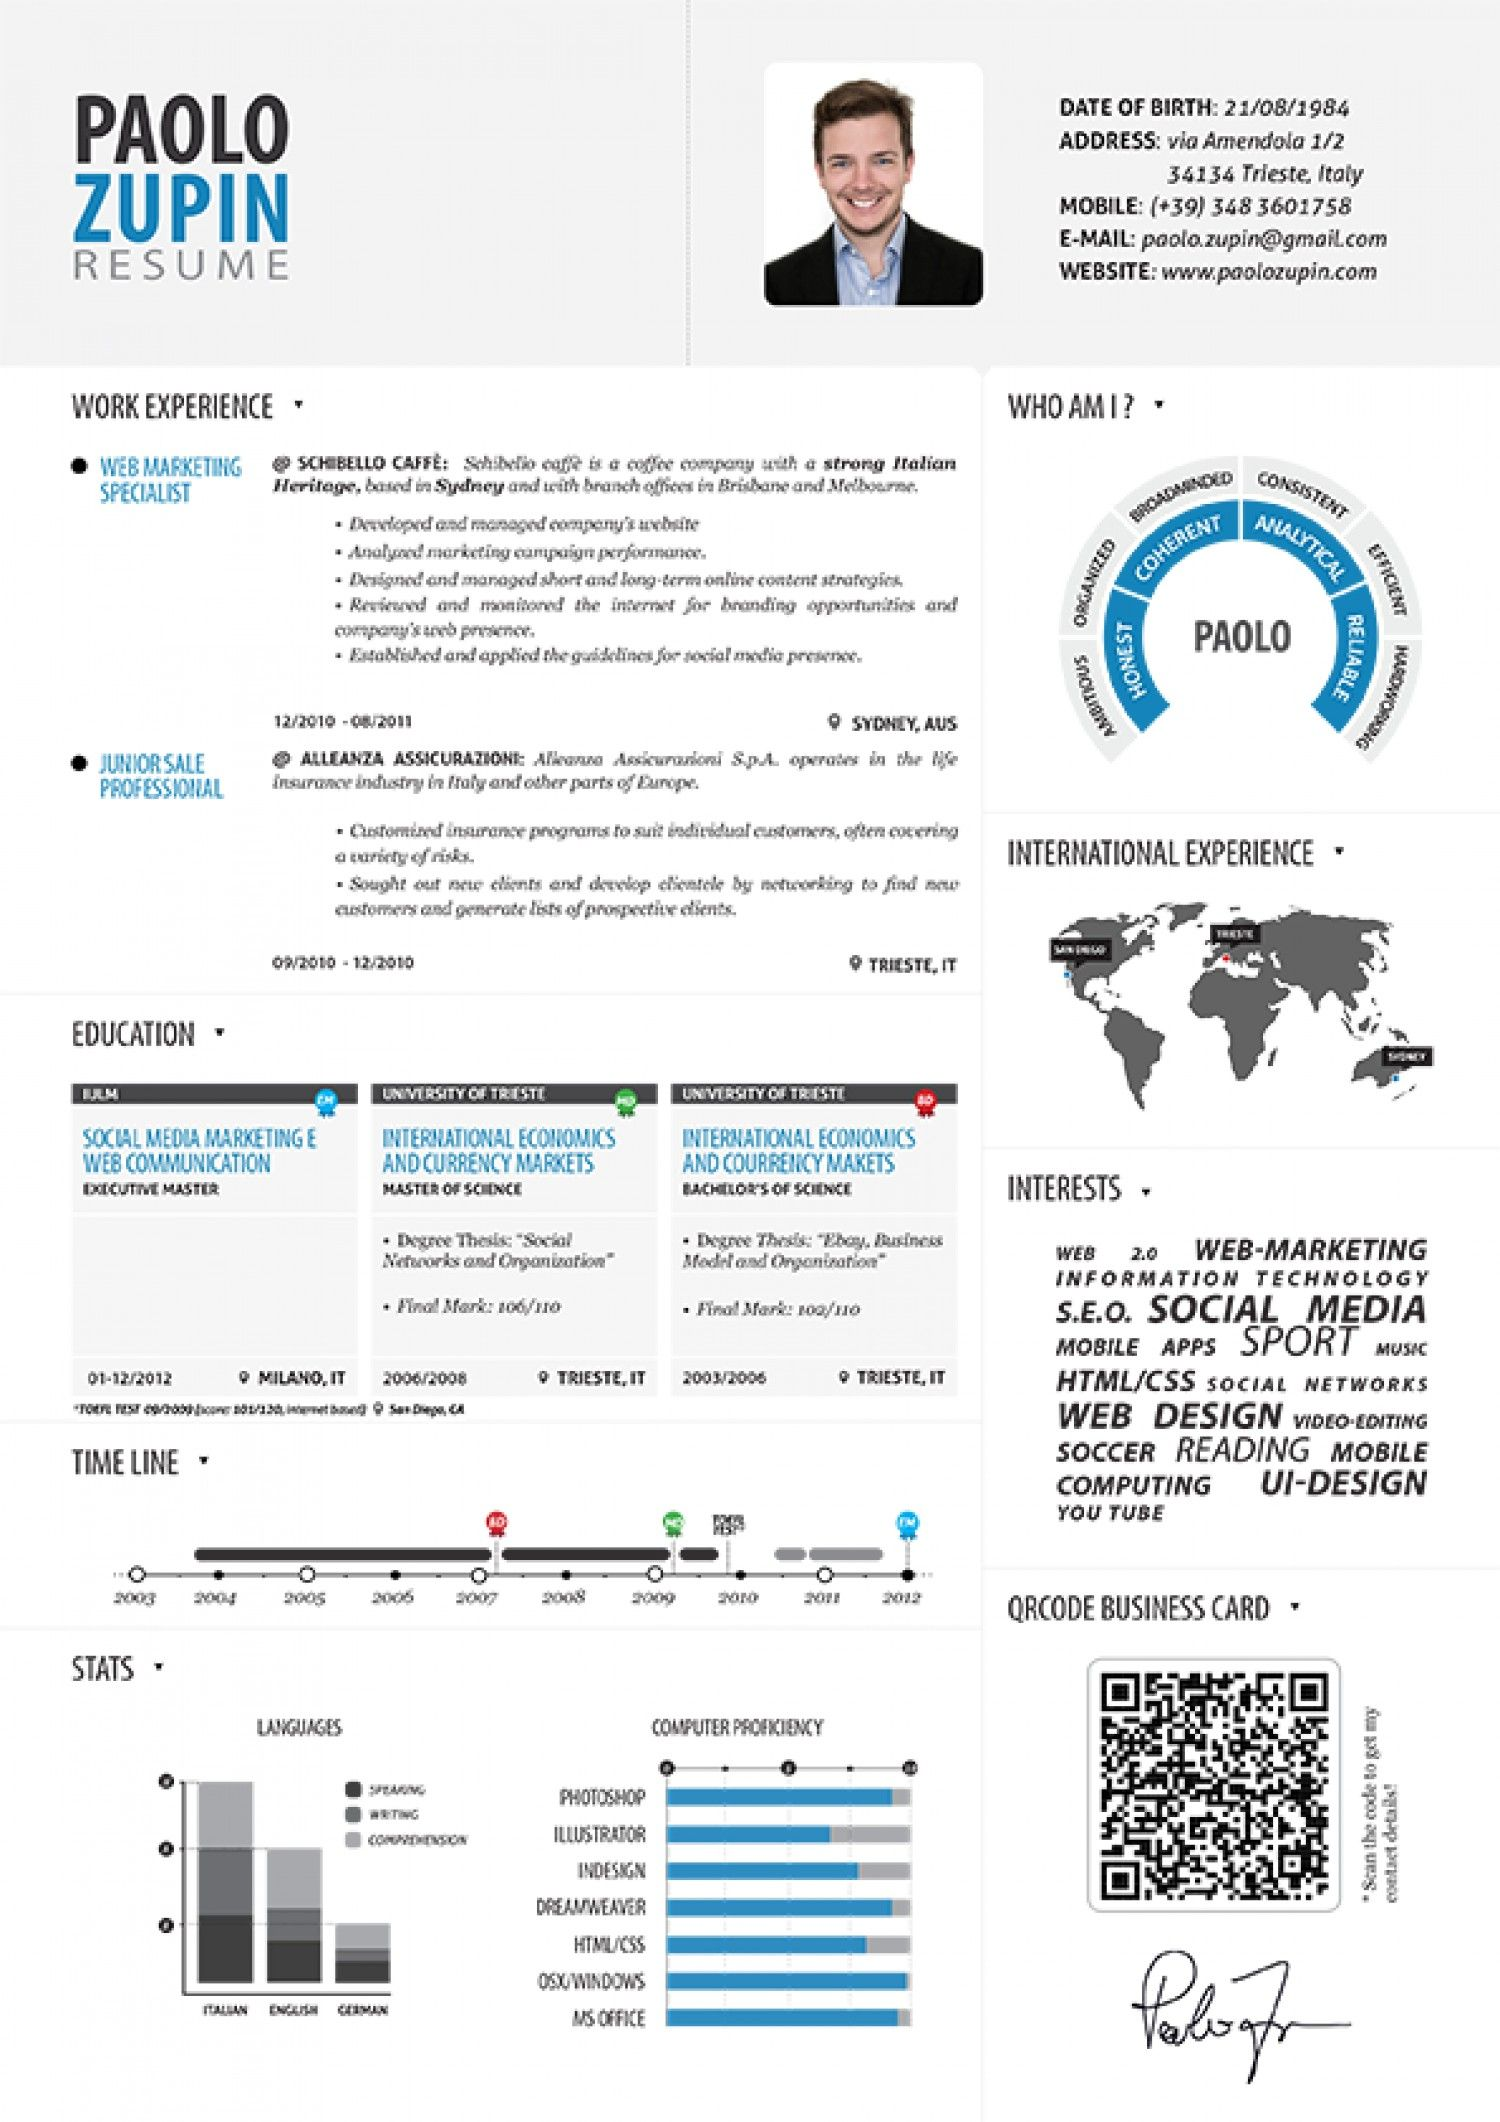 Opposenewapstandardsus  Unusual  Images About Infographic Resume On Pinterest  Infographic  With Gorgeous  Images About Infographic Resume On Pinterest  Infographic Resume Resume And Business Resume With Lovely Build A Resume Online Free Also Standard Resume In Addition Engineering Resume Examples And Infographic Resume Template As Well As Resume Phrases Additionally Objective Section Of Resume From Pinterestcom With Opposenewapstandardsus  Gorgeous  Images About Infographic Resume On Pinterest  Infographic  With Lovely  Images About Infographic Resume On Pinterest  Infographic Resume Resume And Business Resume And Unusual Build A Resume Online Free Also Standard Resume In Addition Engineering Resume Examples From Pinterestcom